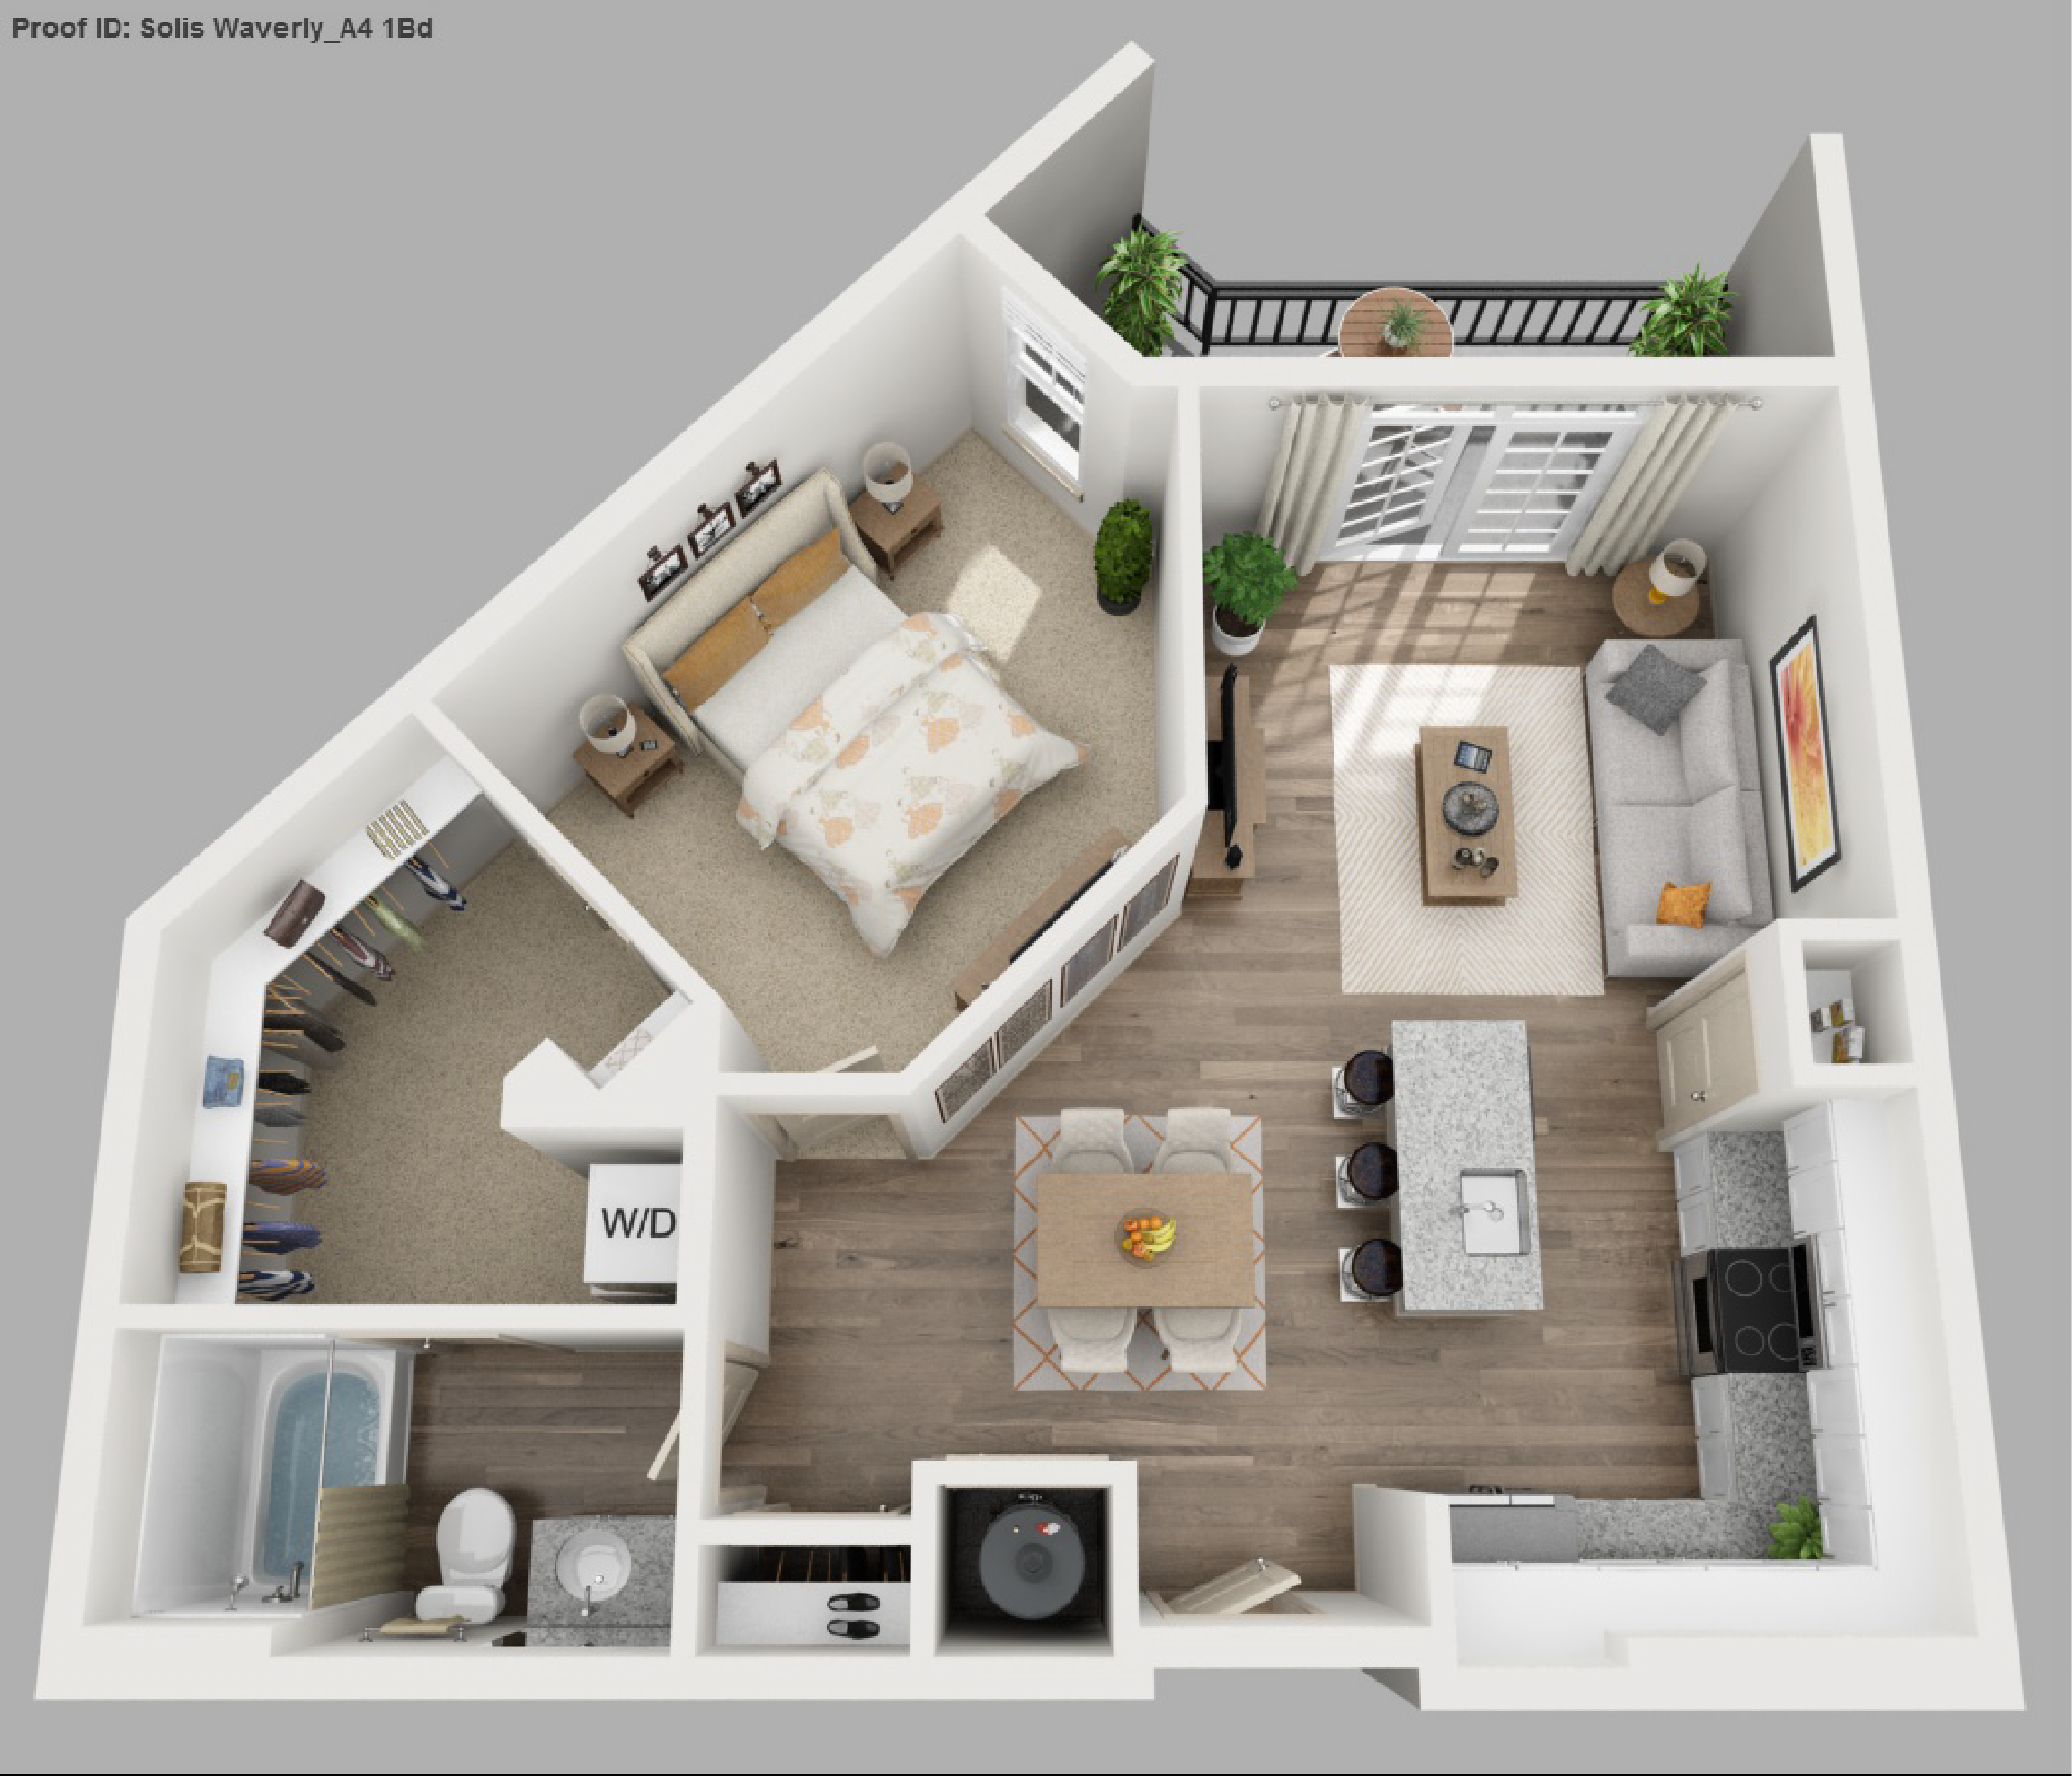 A3 1 Bedroom View Floor Plan